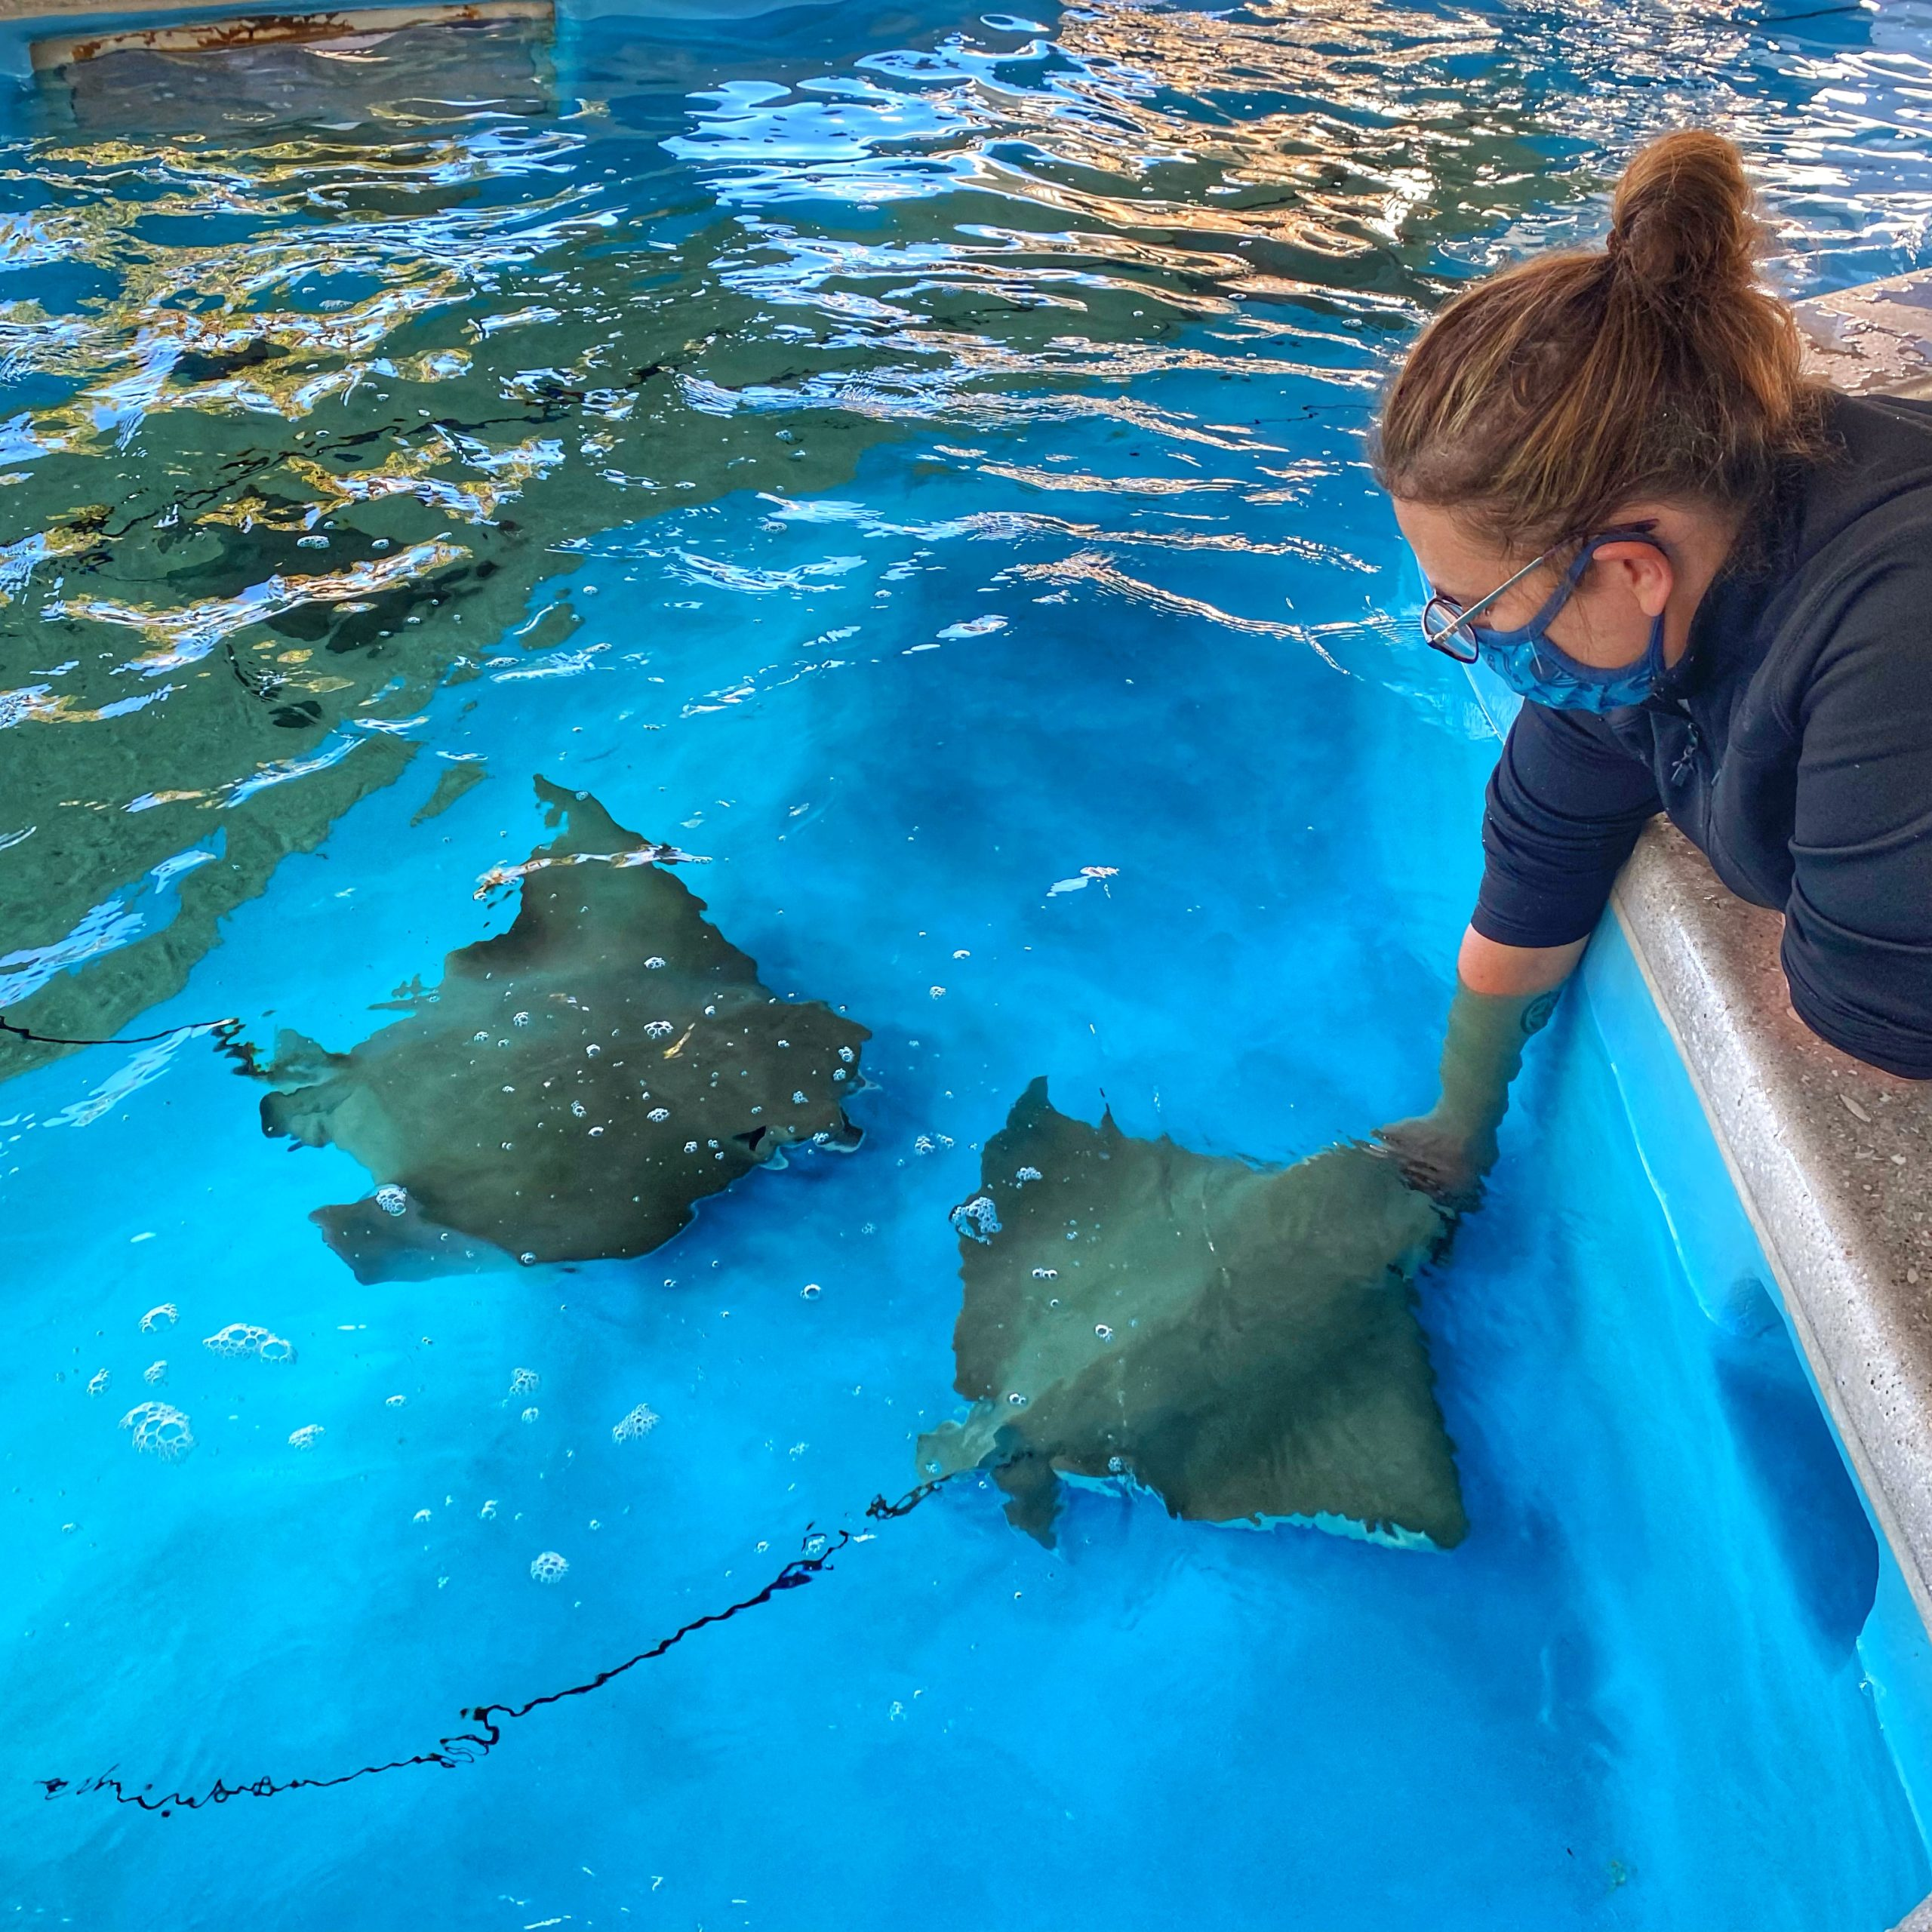 Feeding the Sting Rays at the Florida Oceanographic Society